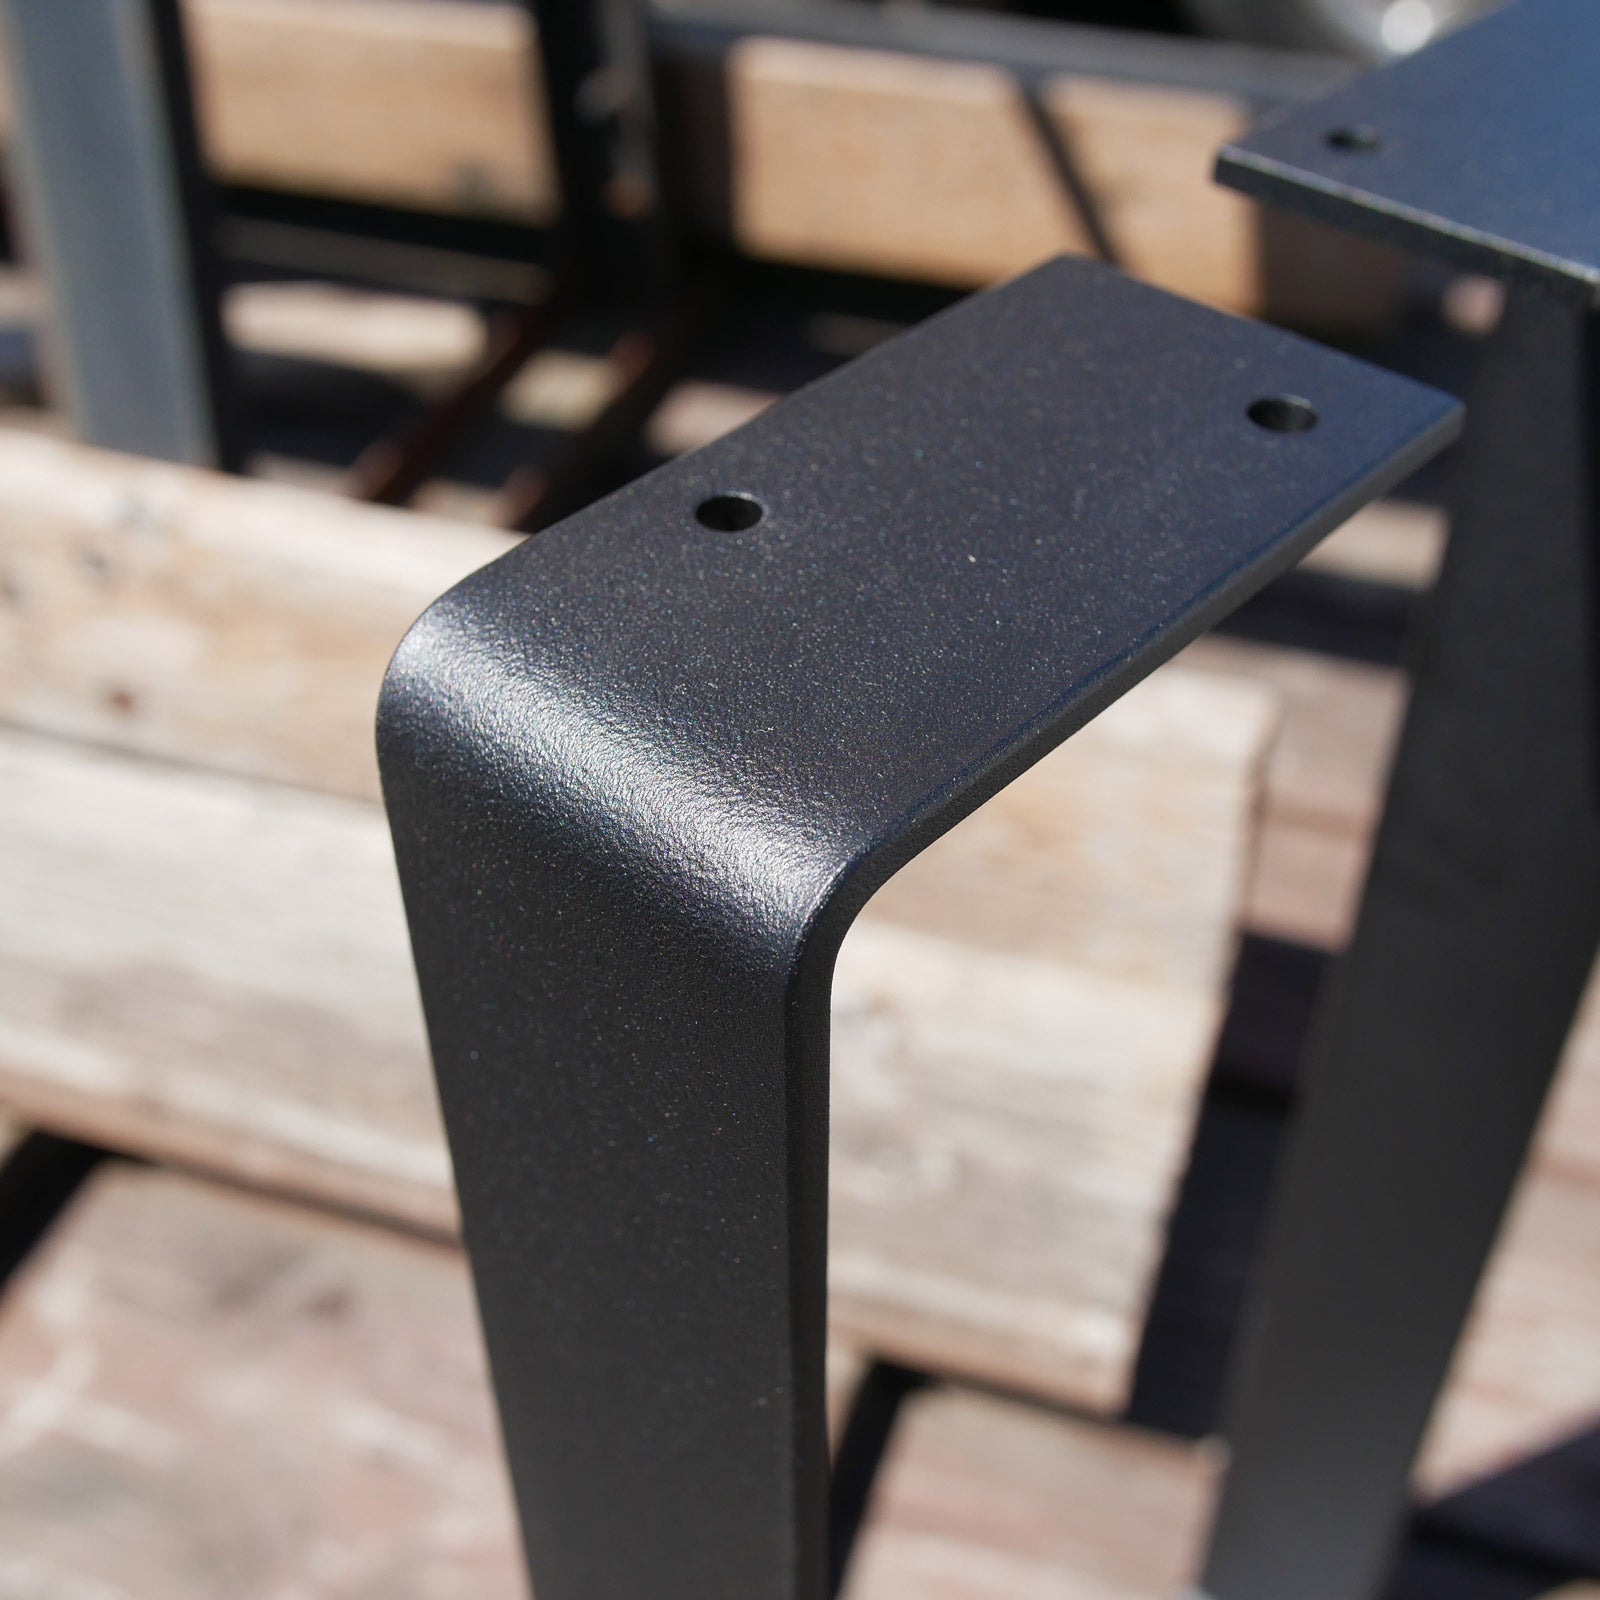 Black powder coat on flat bar steel in direct sunlight